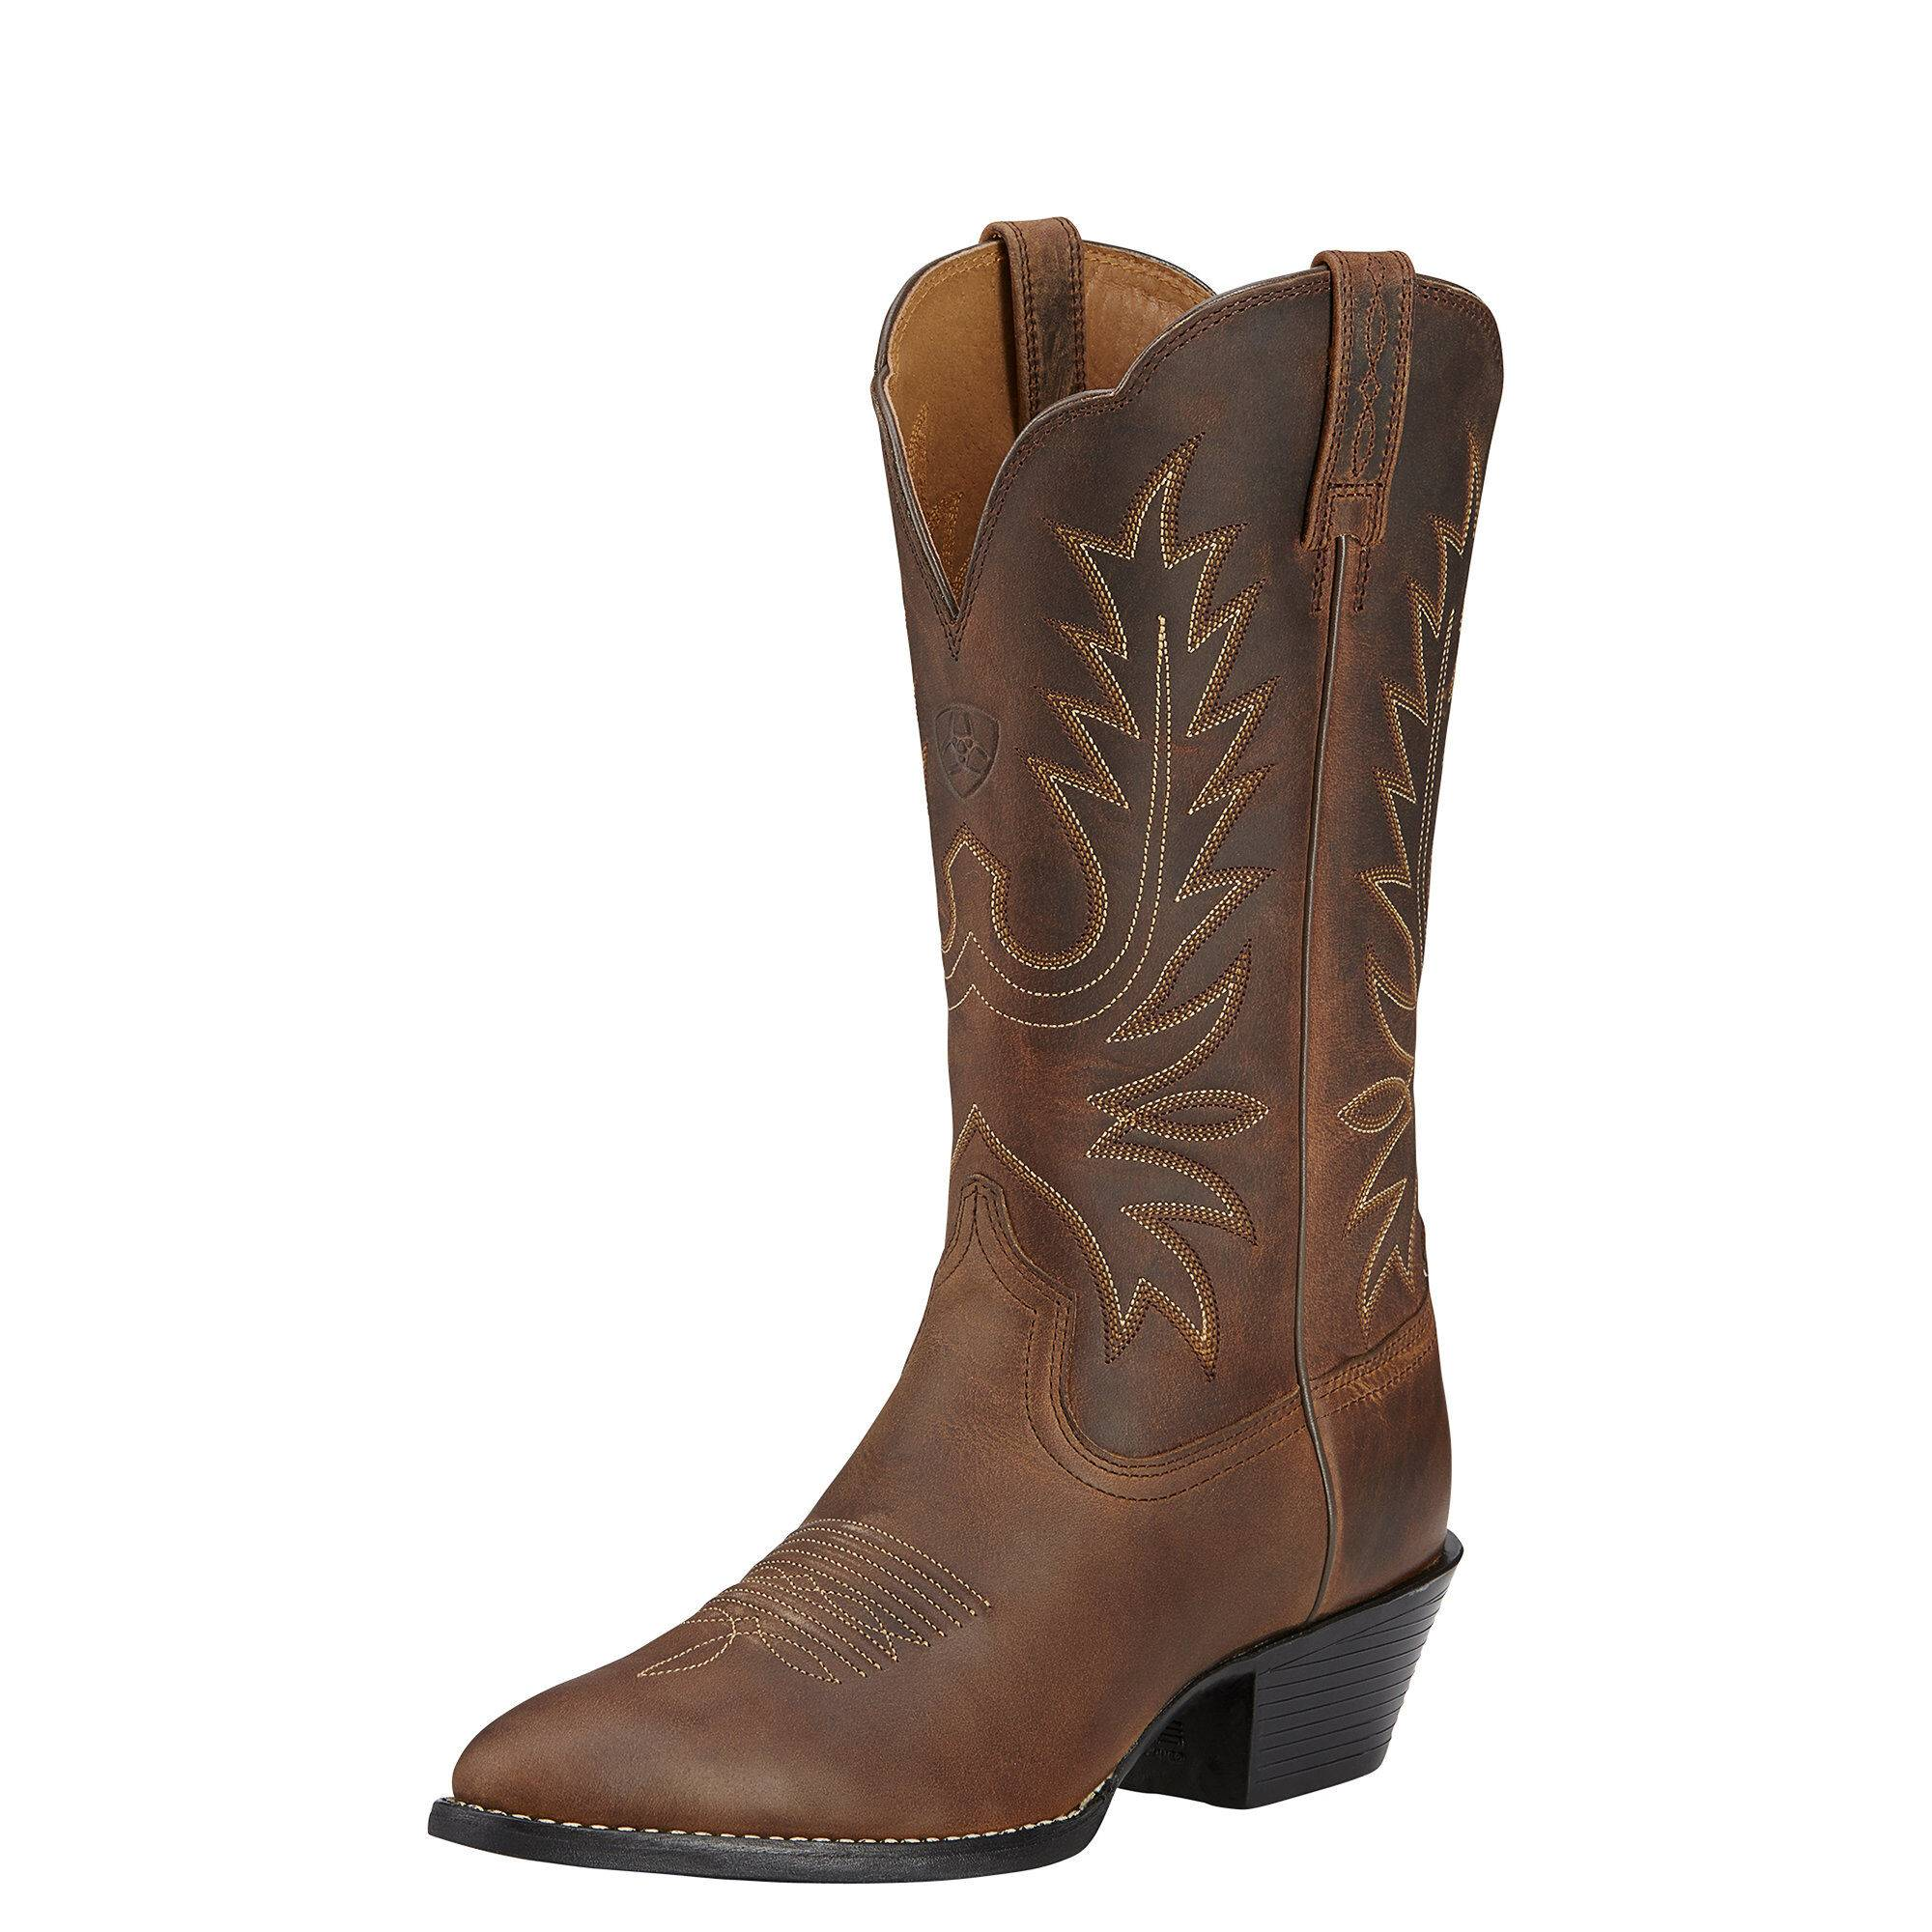 Ariat Women's Heritage R Toe Western Boots in Distressed Brown, Size 9 C / Wide by Ariat